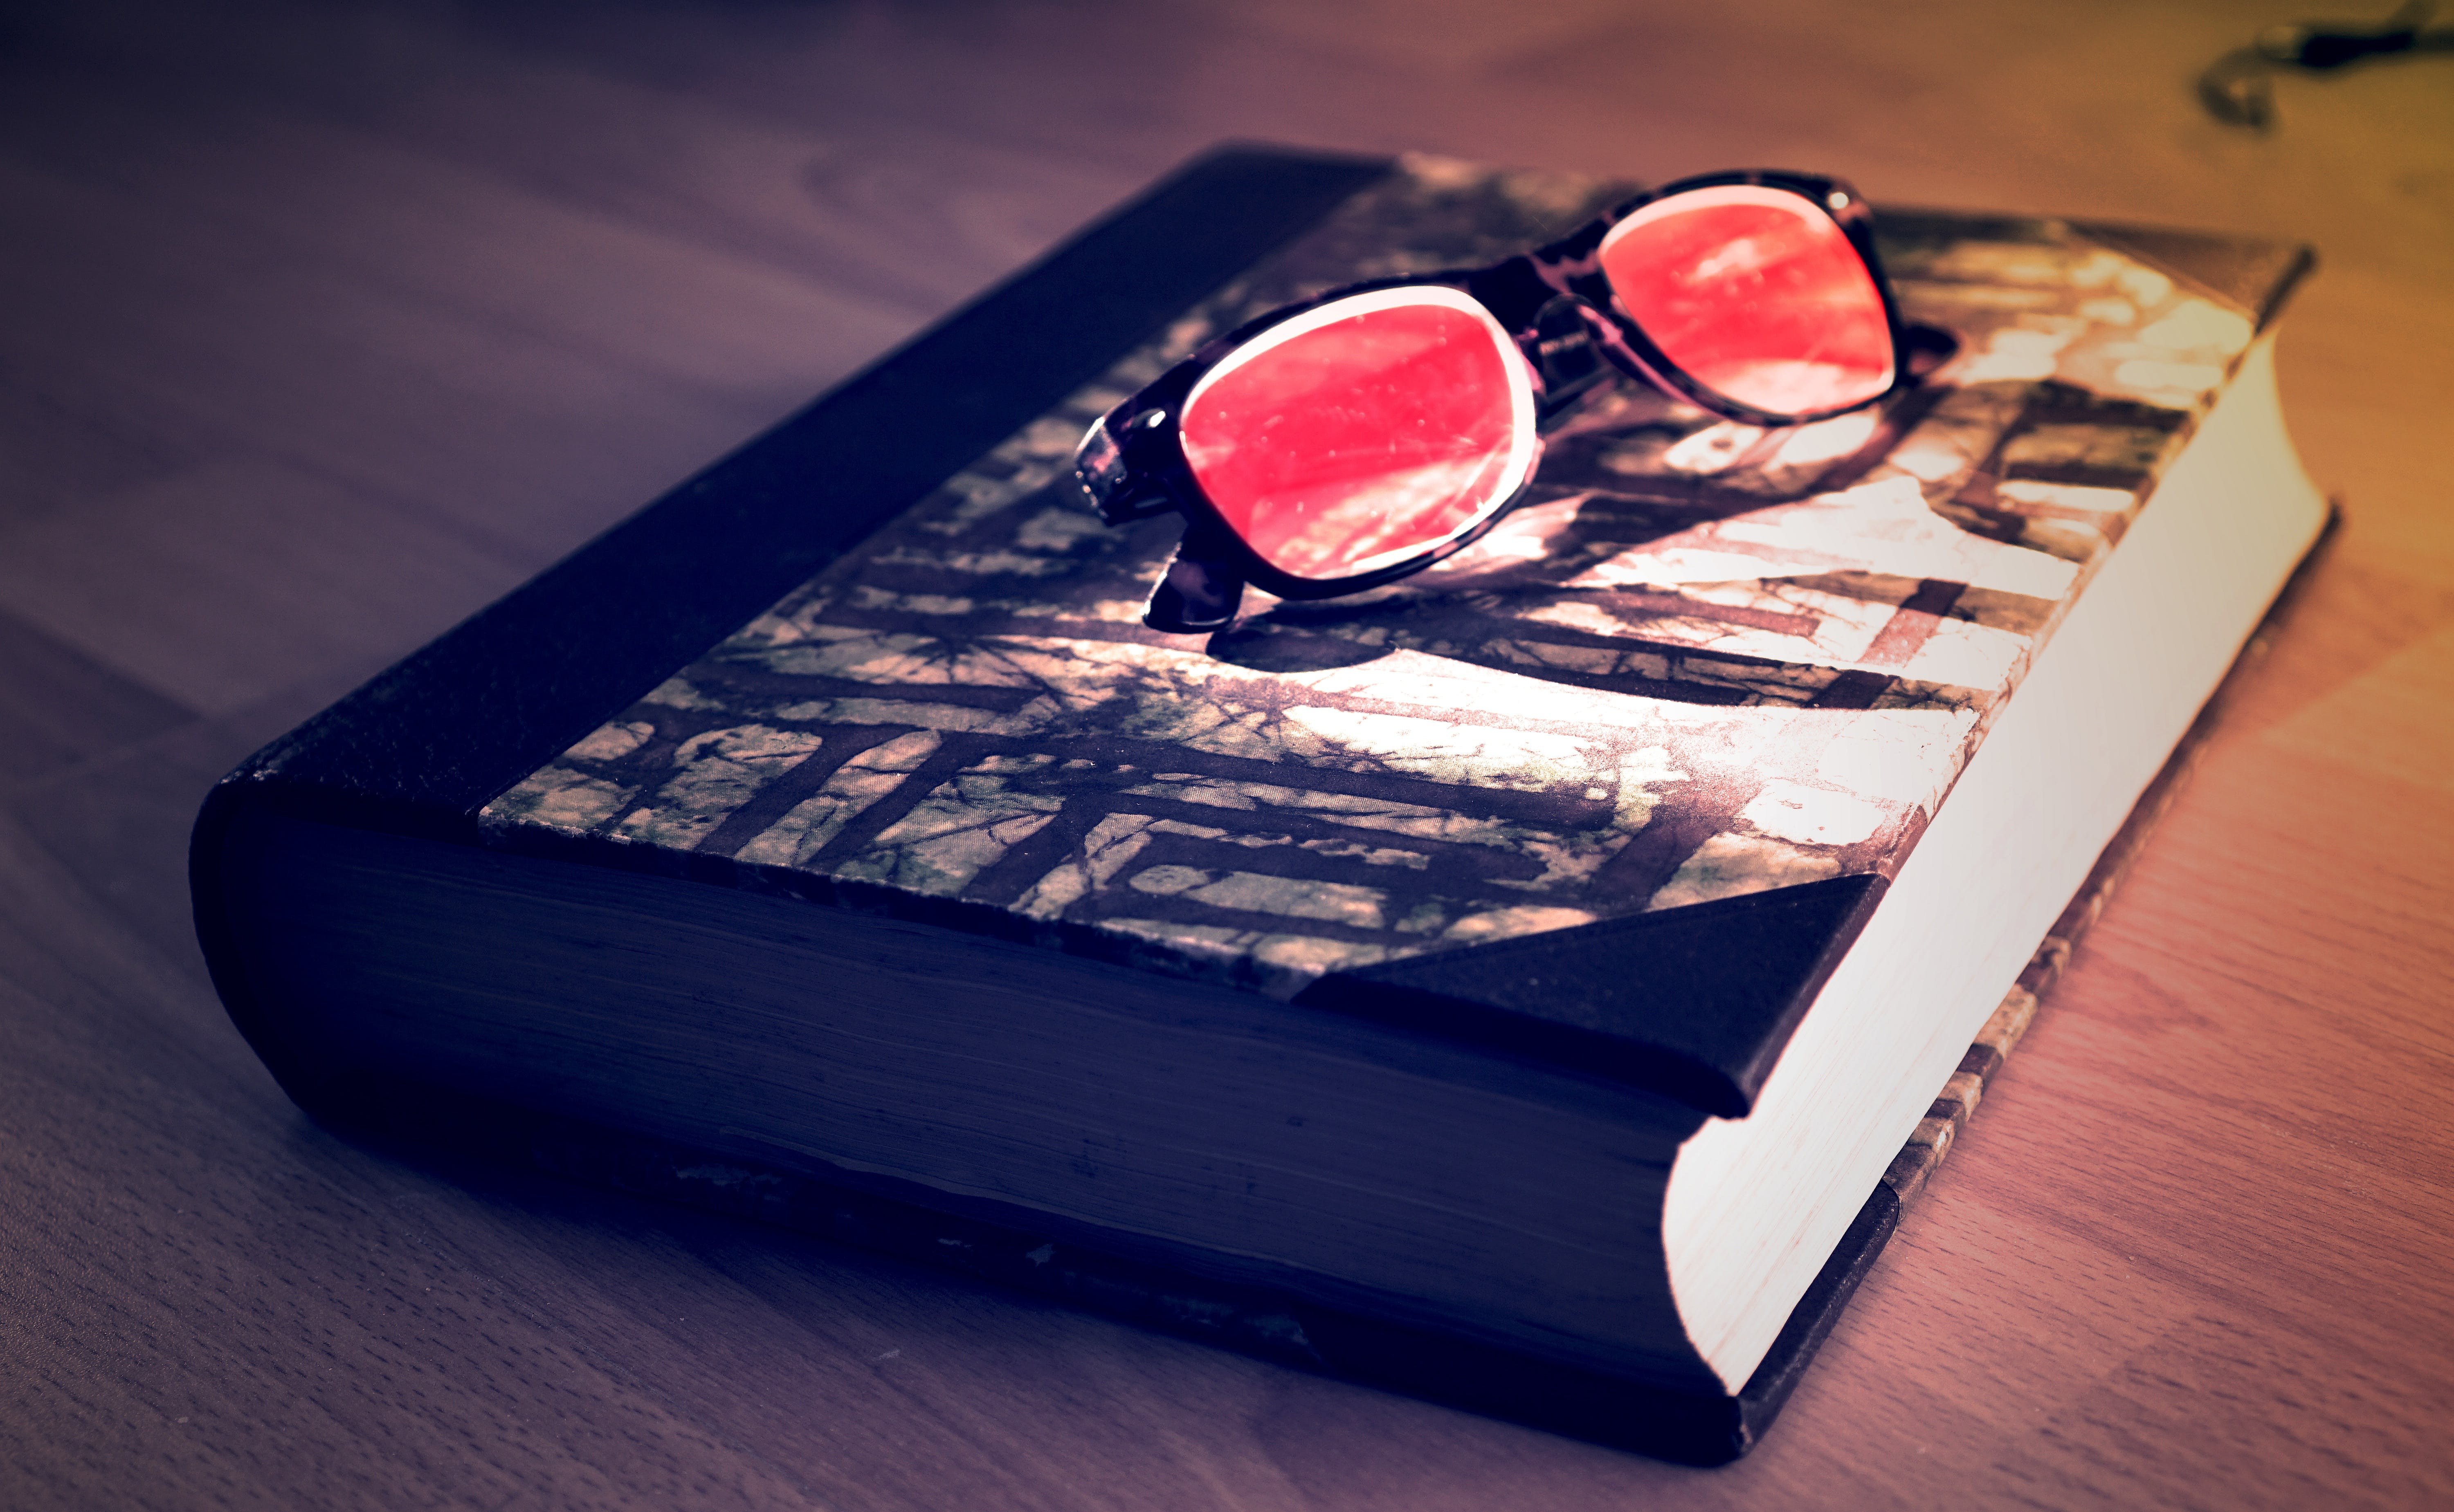 Black Framed Sunglasses on Black Book